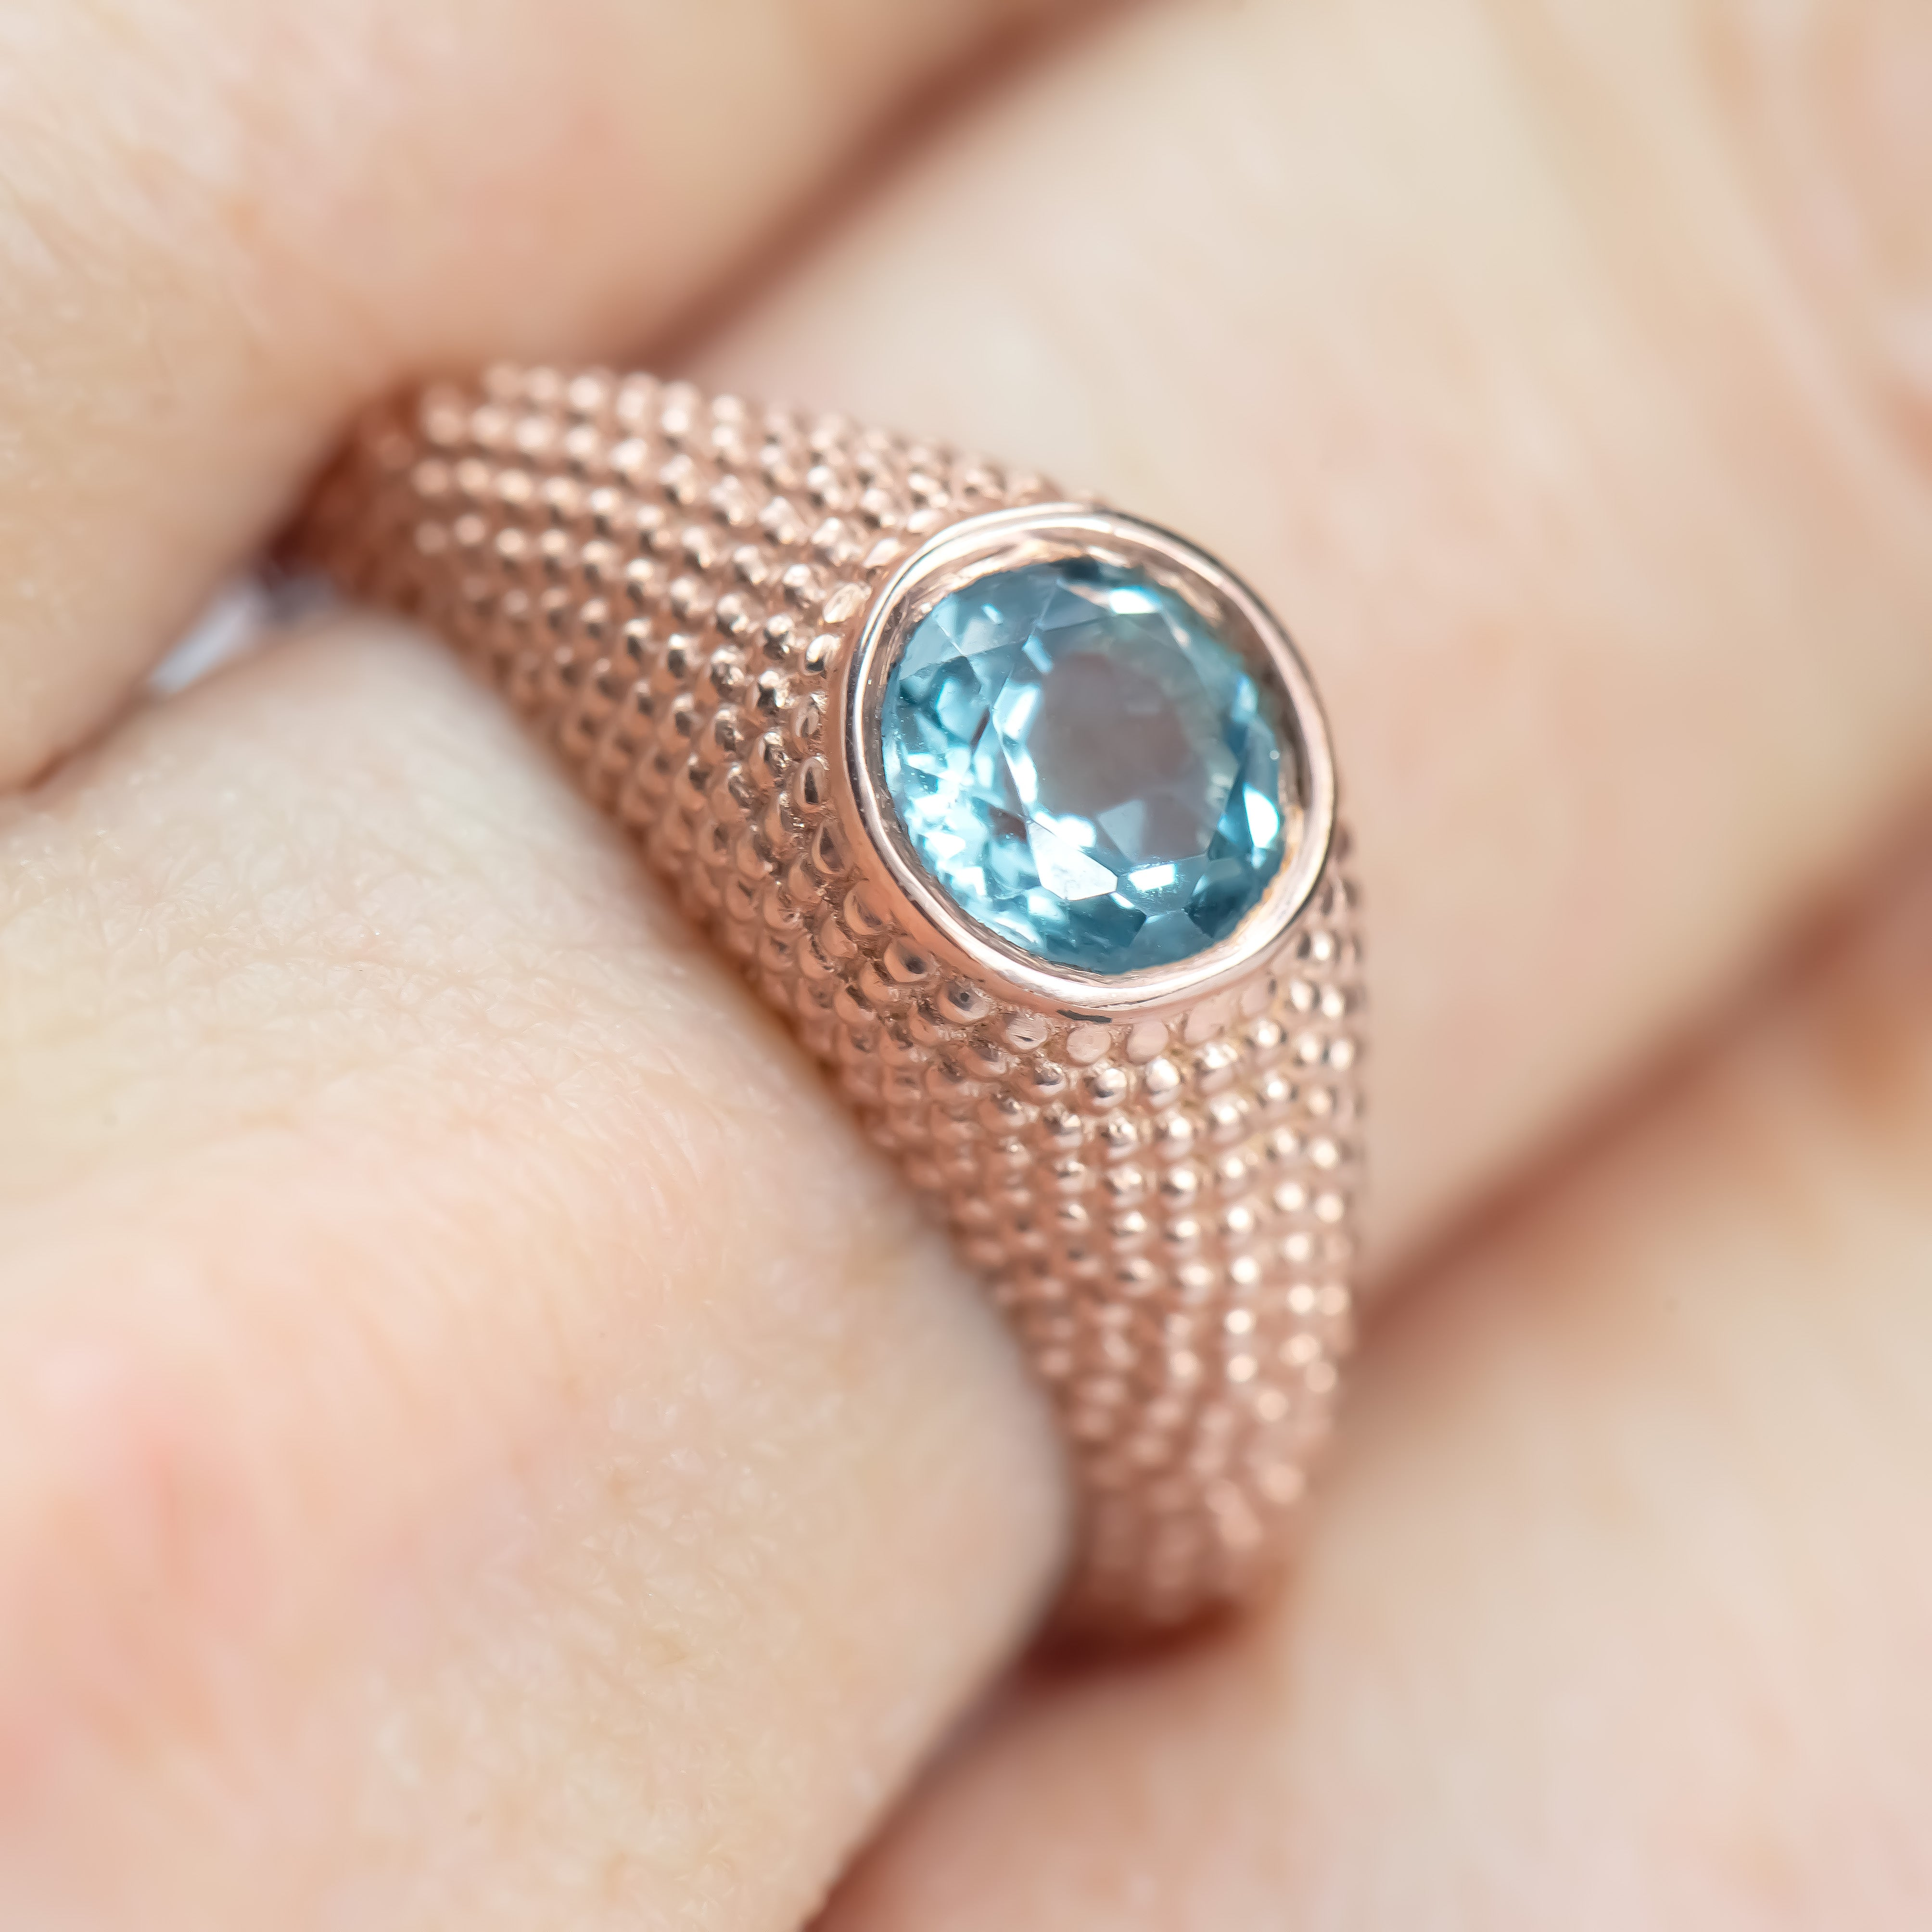 Nubia Round Blue Topaz Rose Gold Ring Size 7.5US - Manari Design